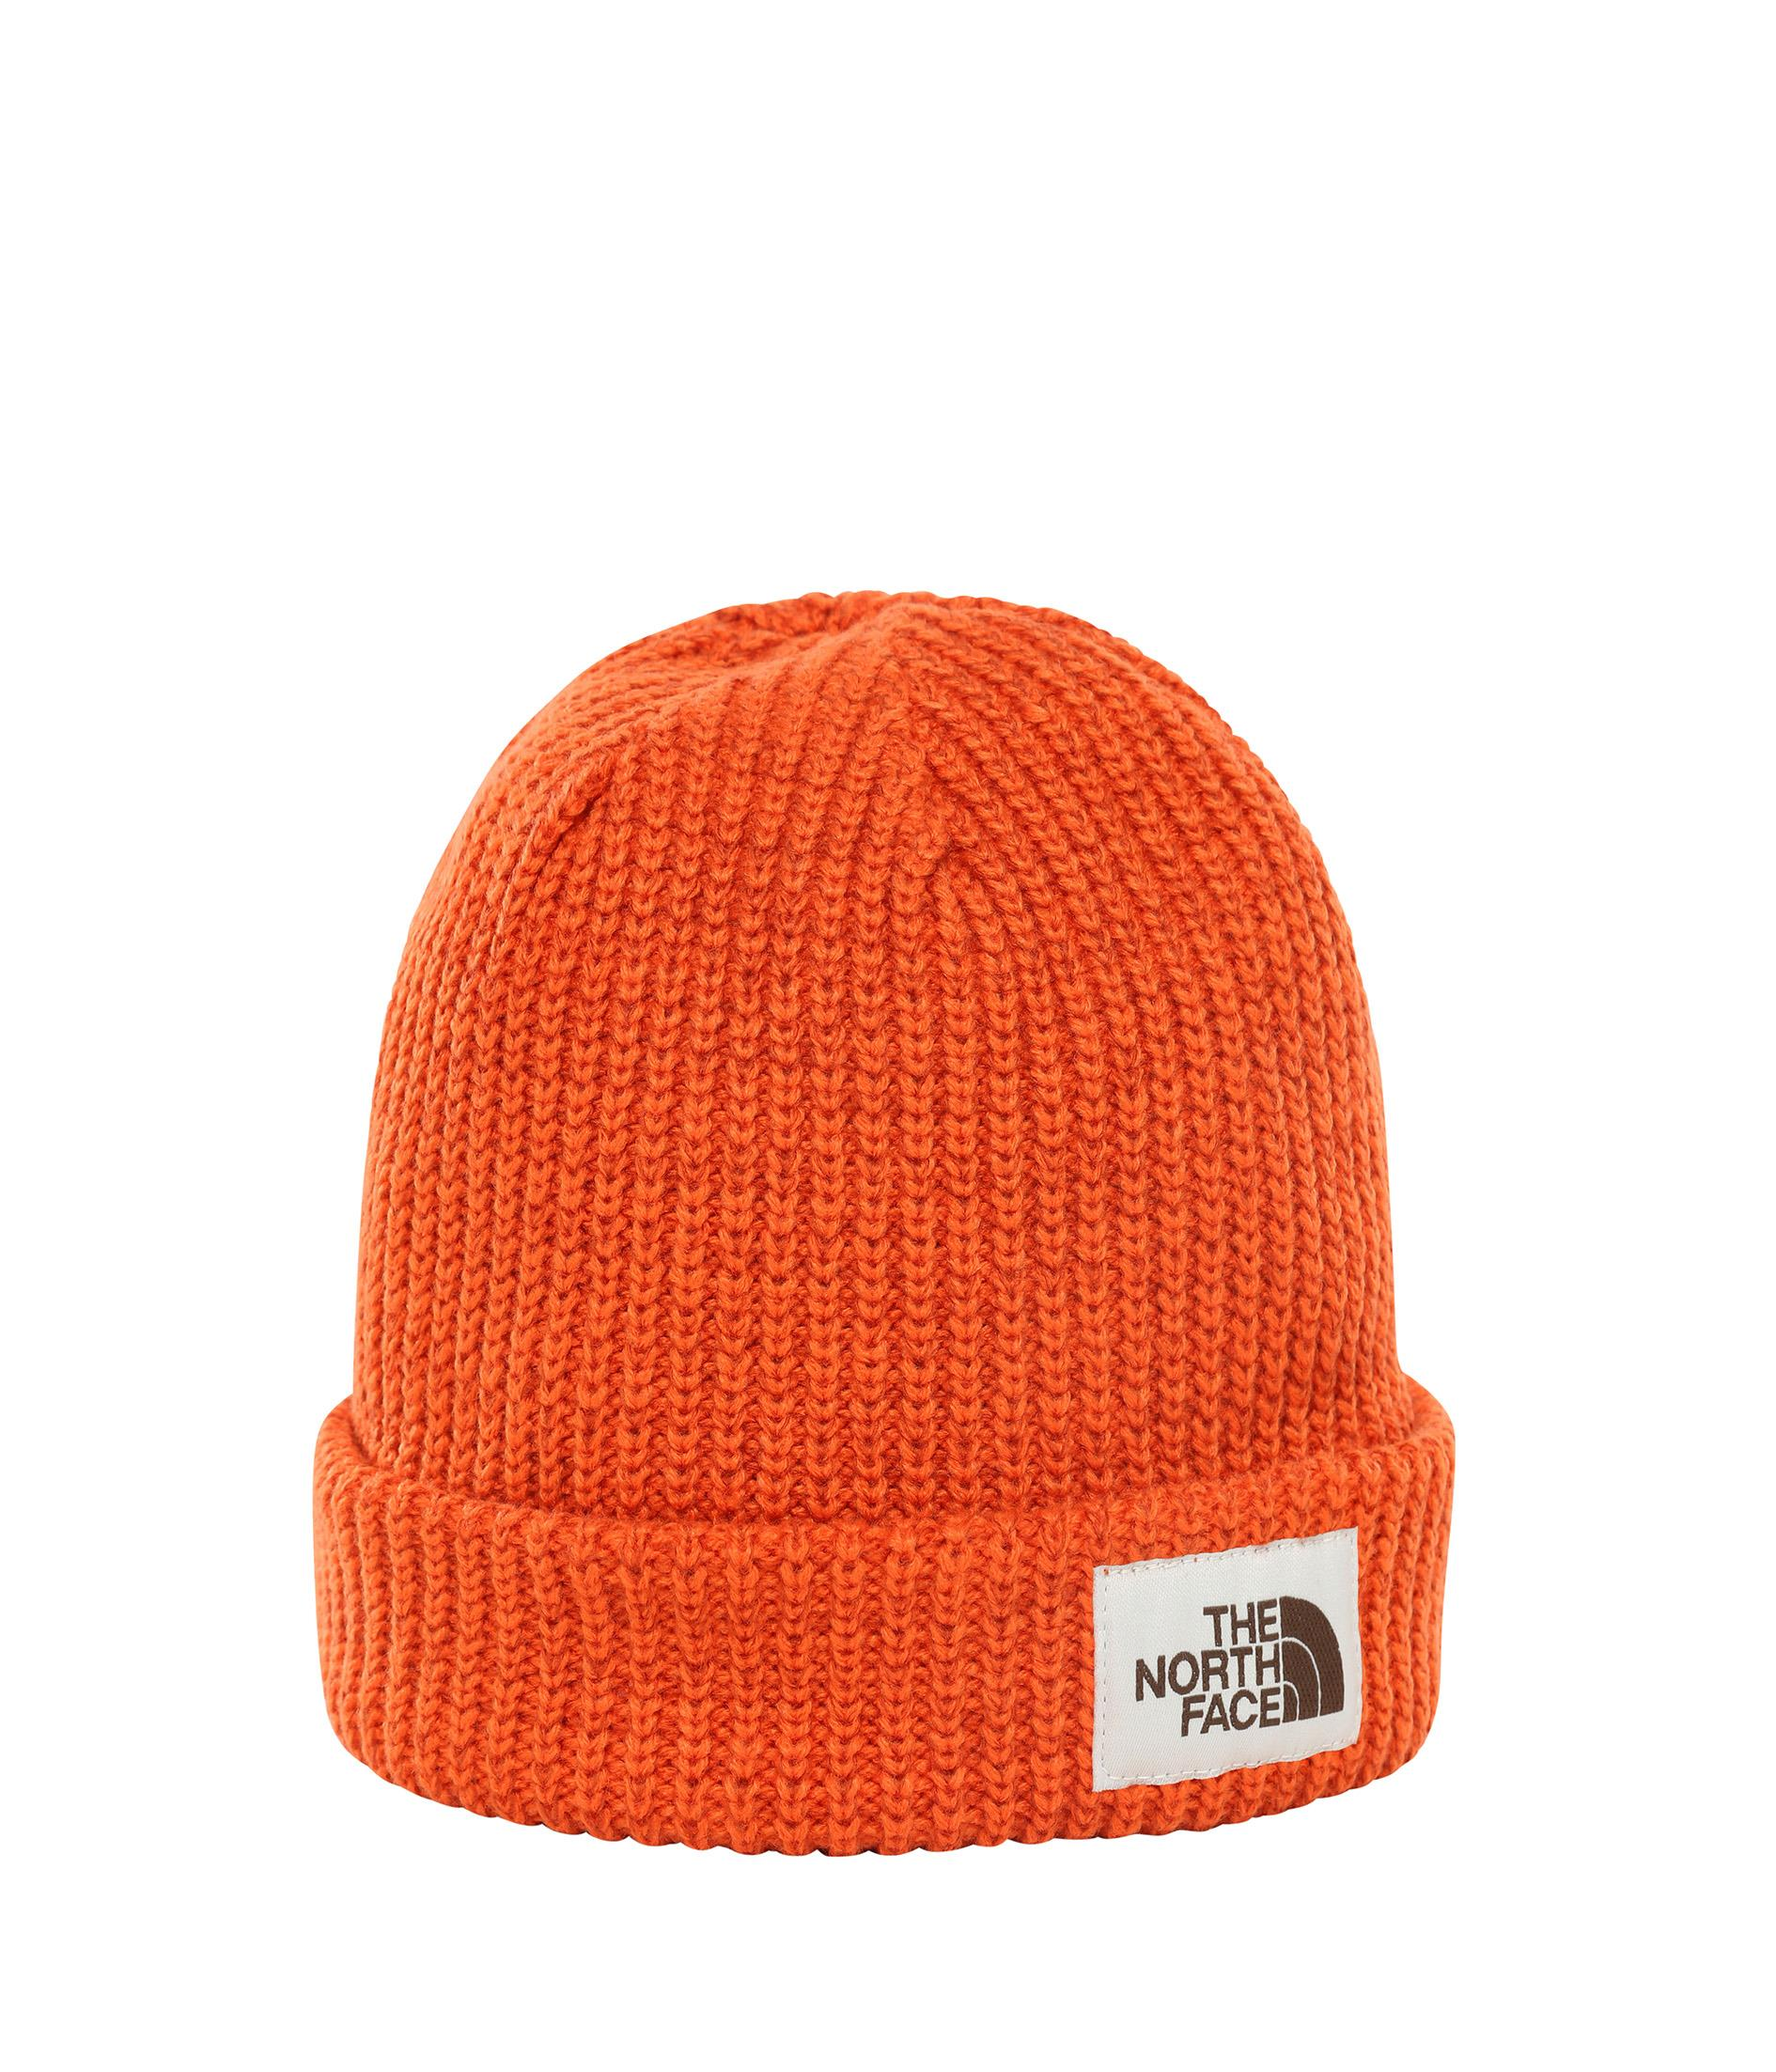 The North Face Salty Dog Bere Nf0A3Fjwel91